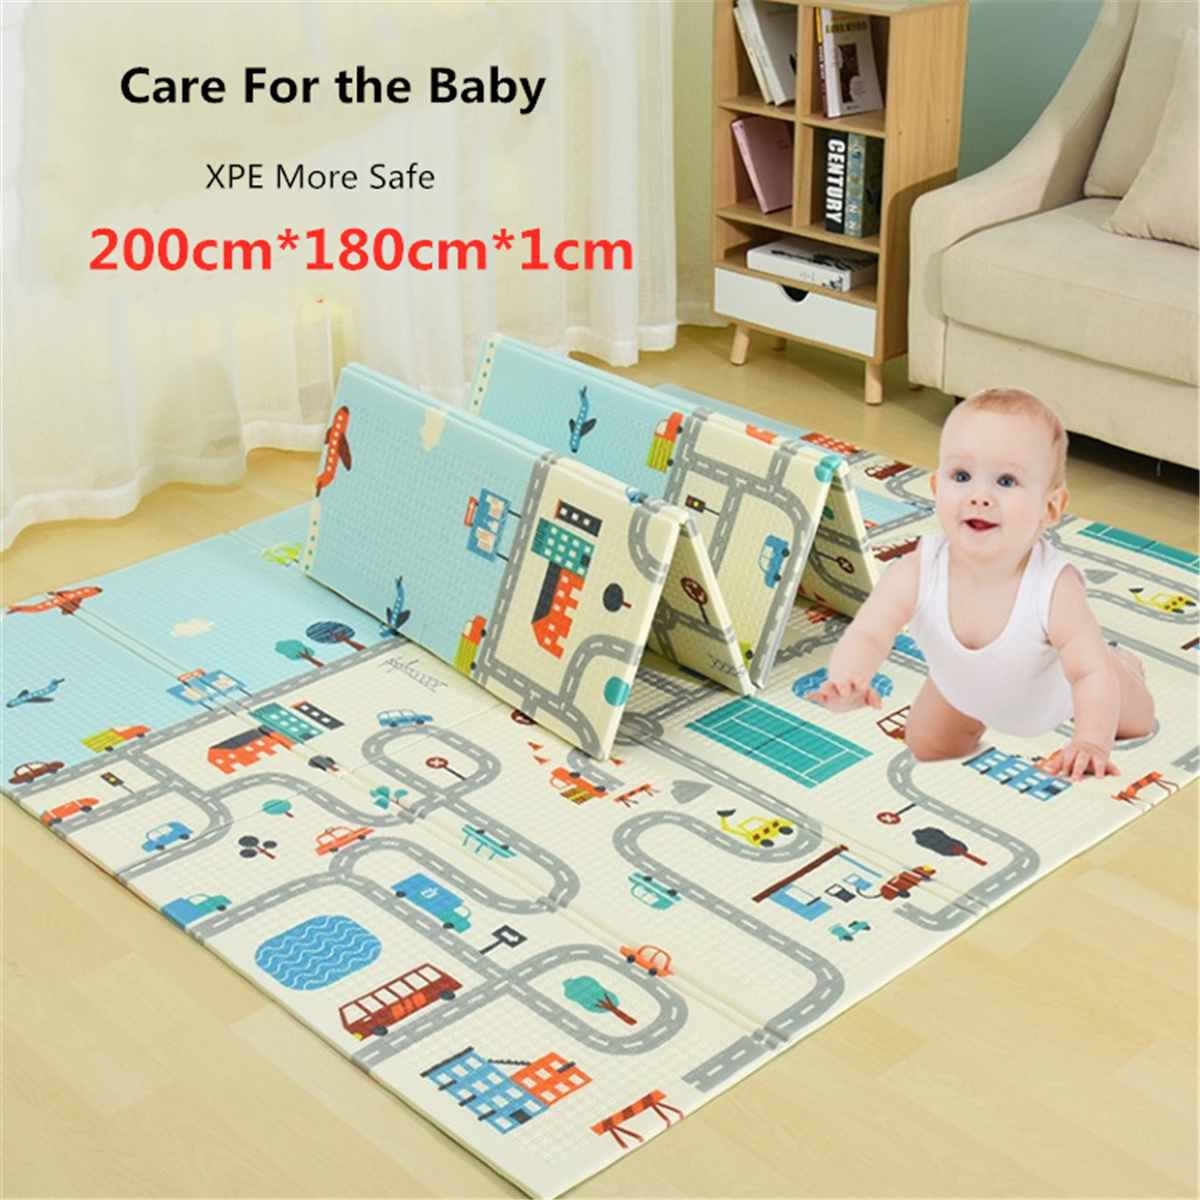 200x180x1cm Infant  Mat XPE Puzzle Children Mat Thickened Tapete Infantil Baby Room Crawling Pad Toddler Folding Mat